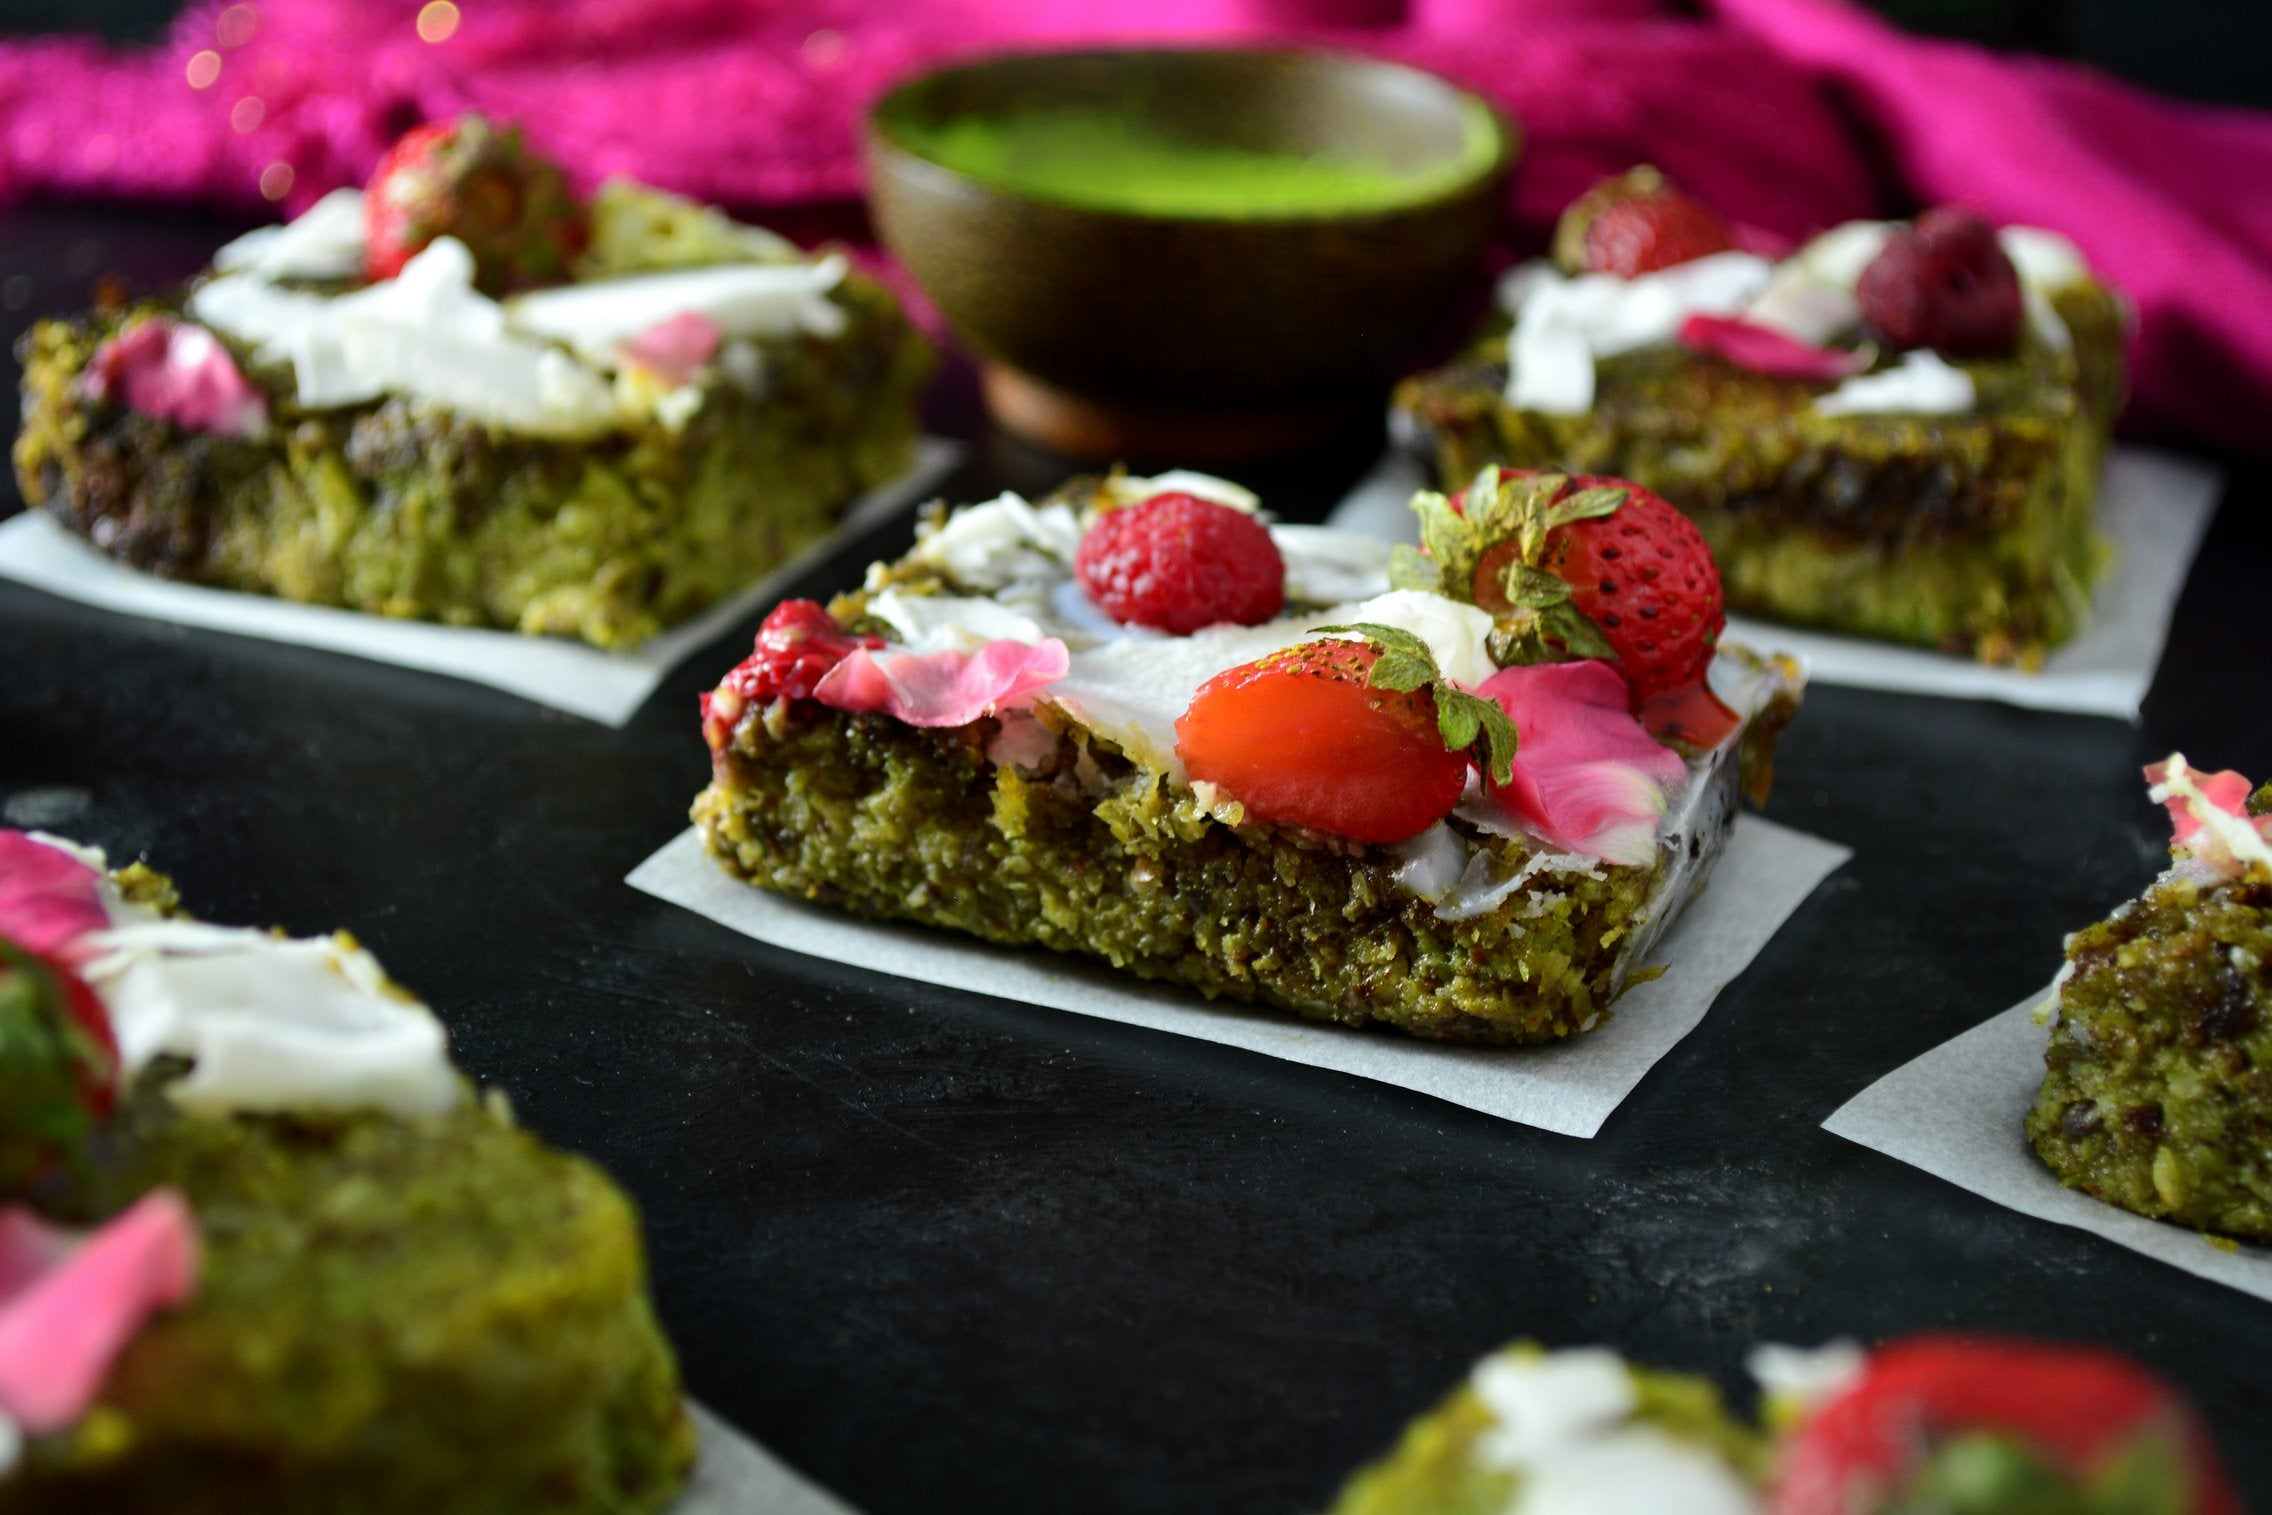 Coconut Matcha Brownies With Strawberries and Raspberries